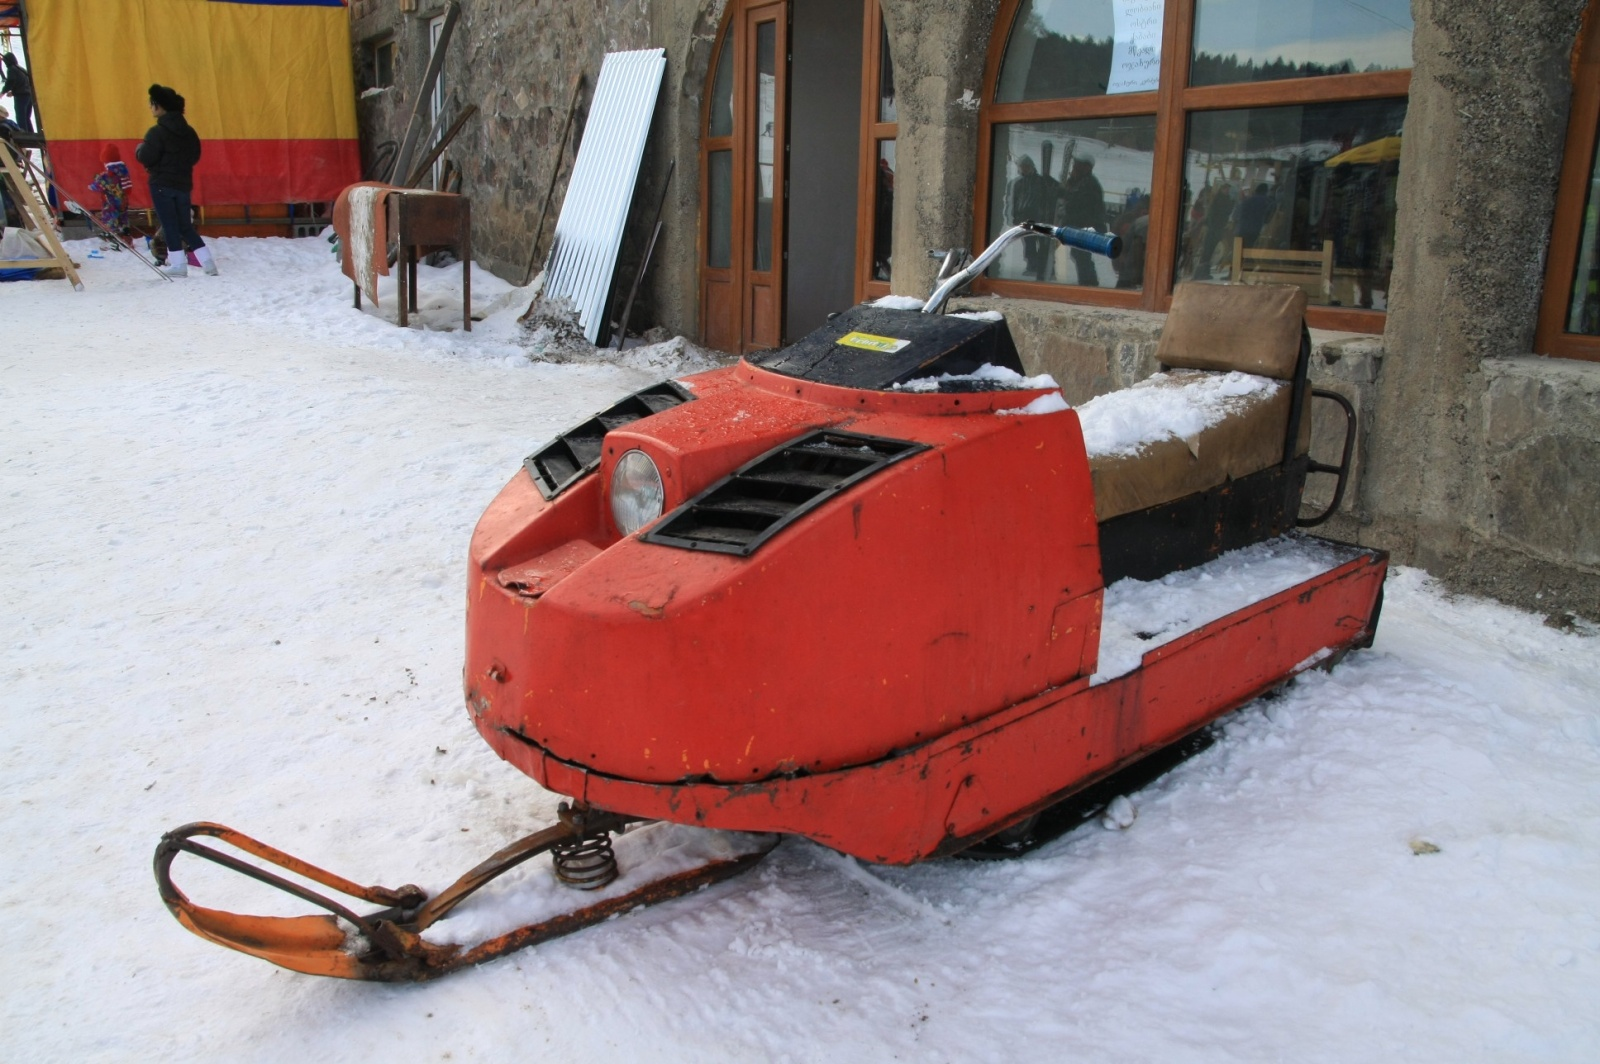 Retro snowmobile